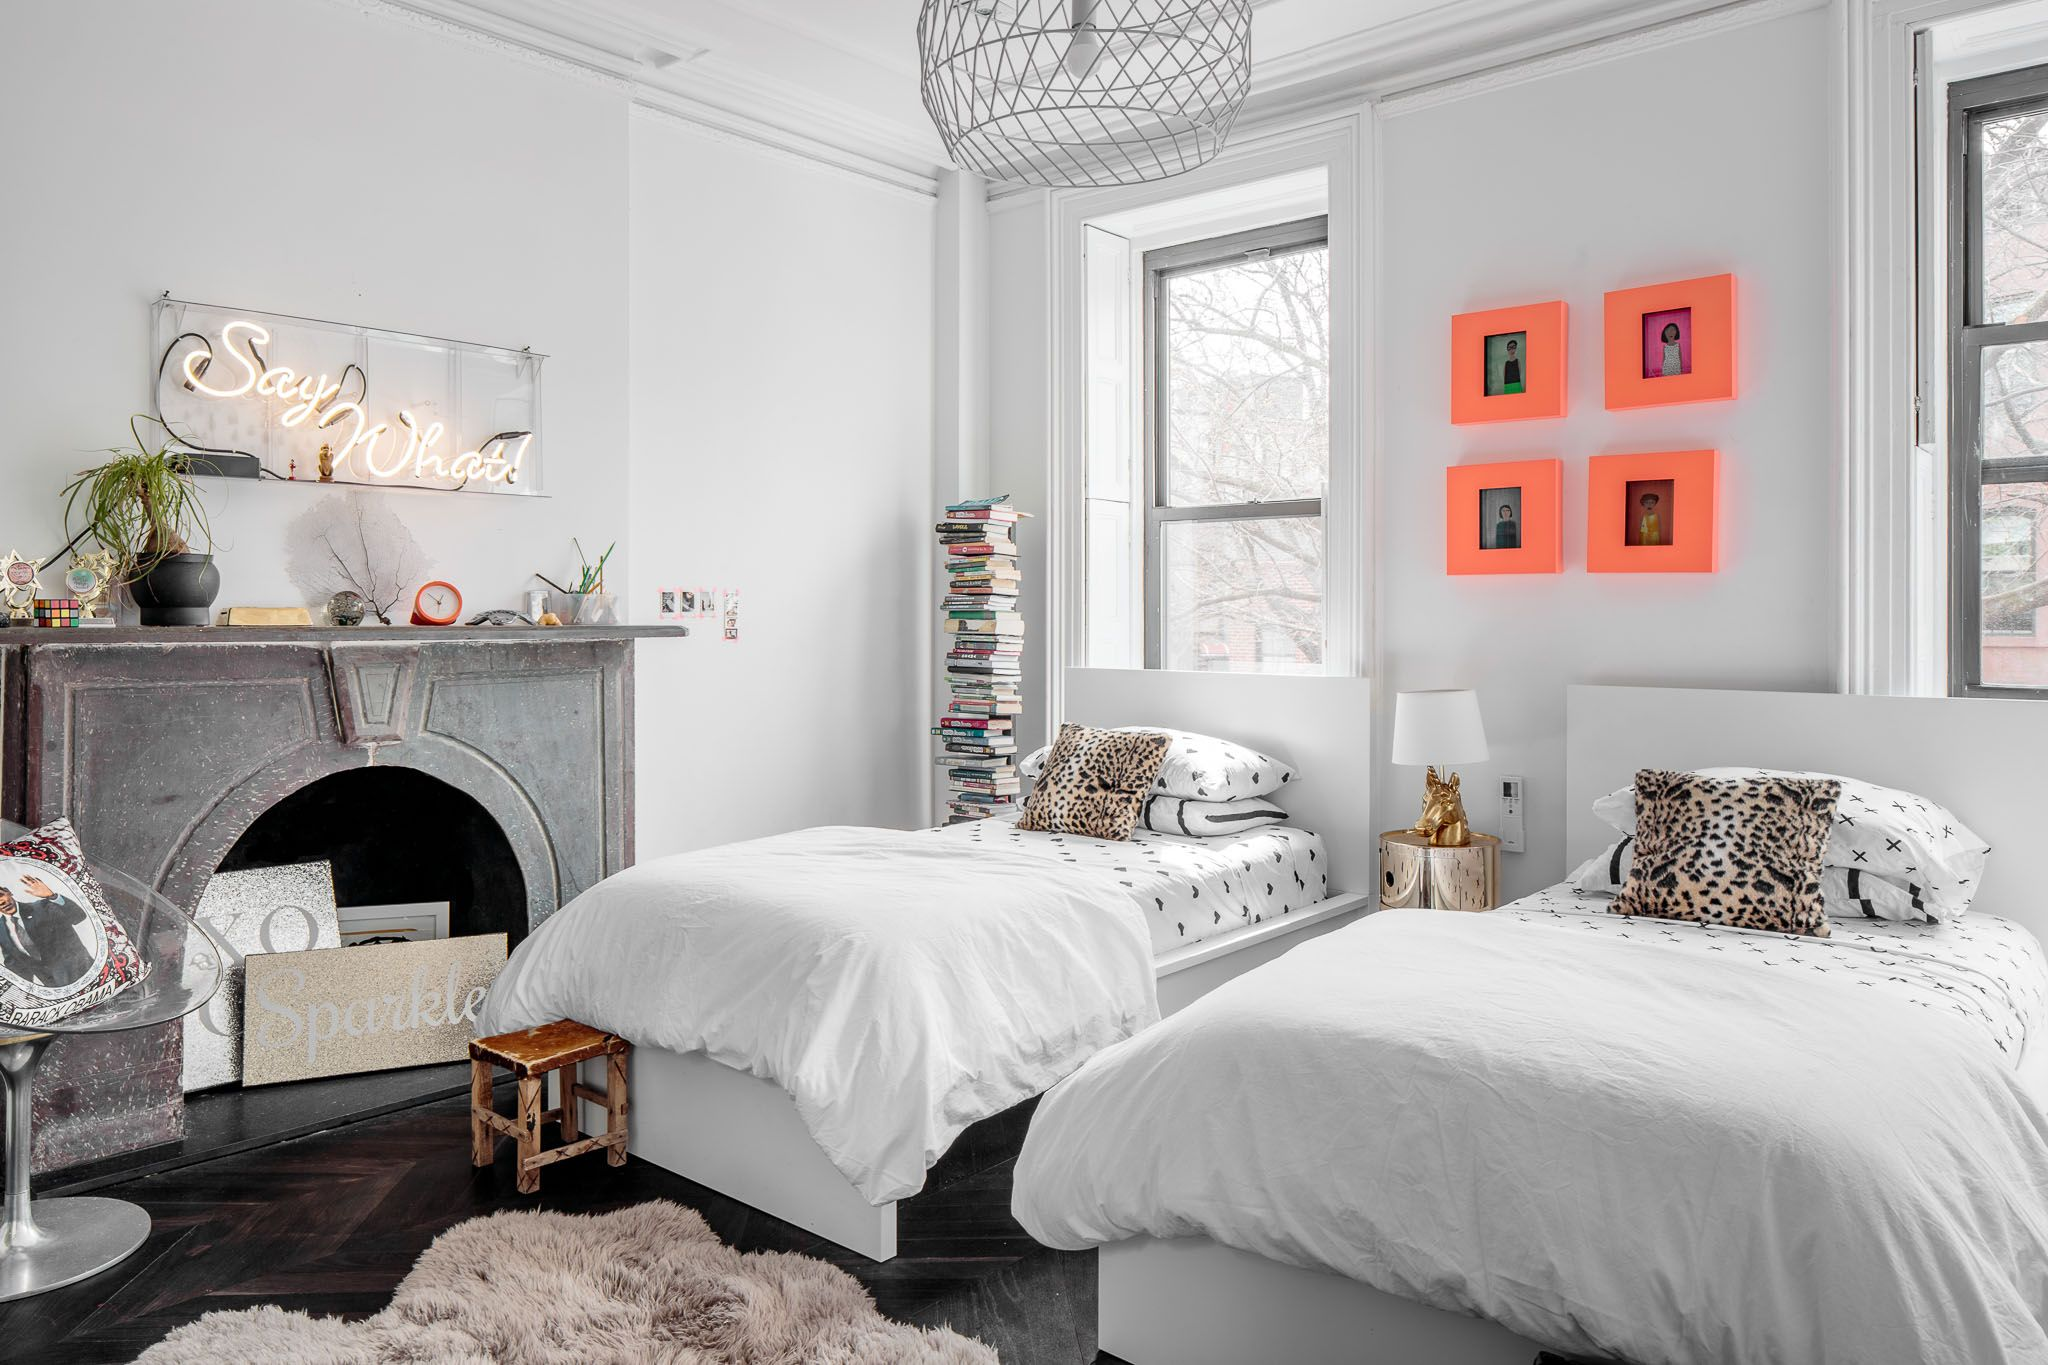 19 of our favorite bright white spaces